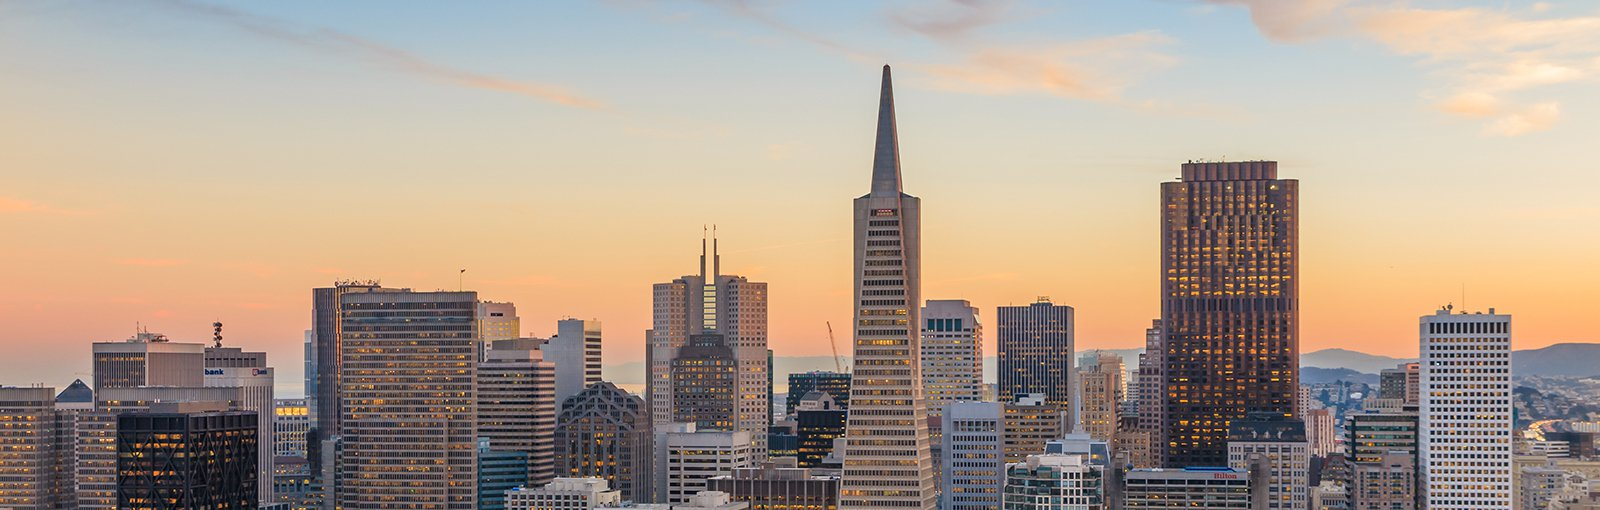 San Francisco Data Centers & Colocation